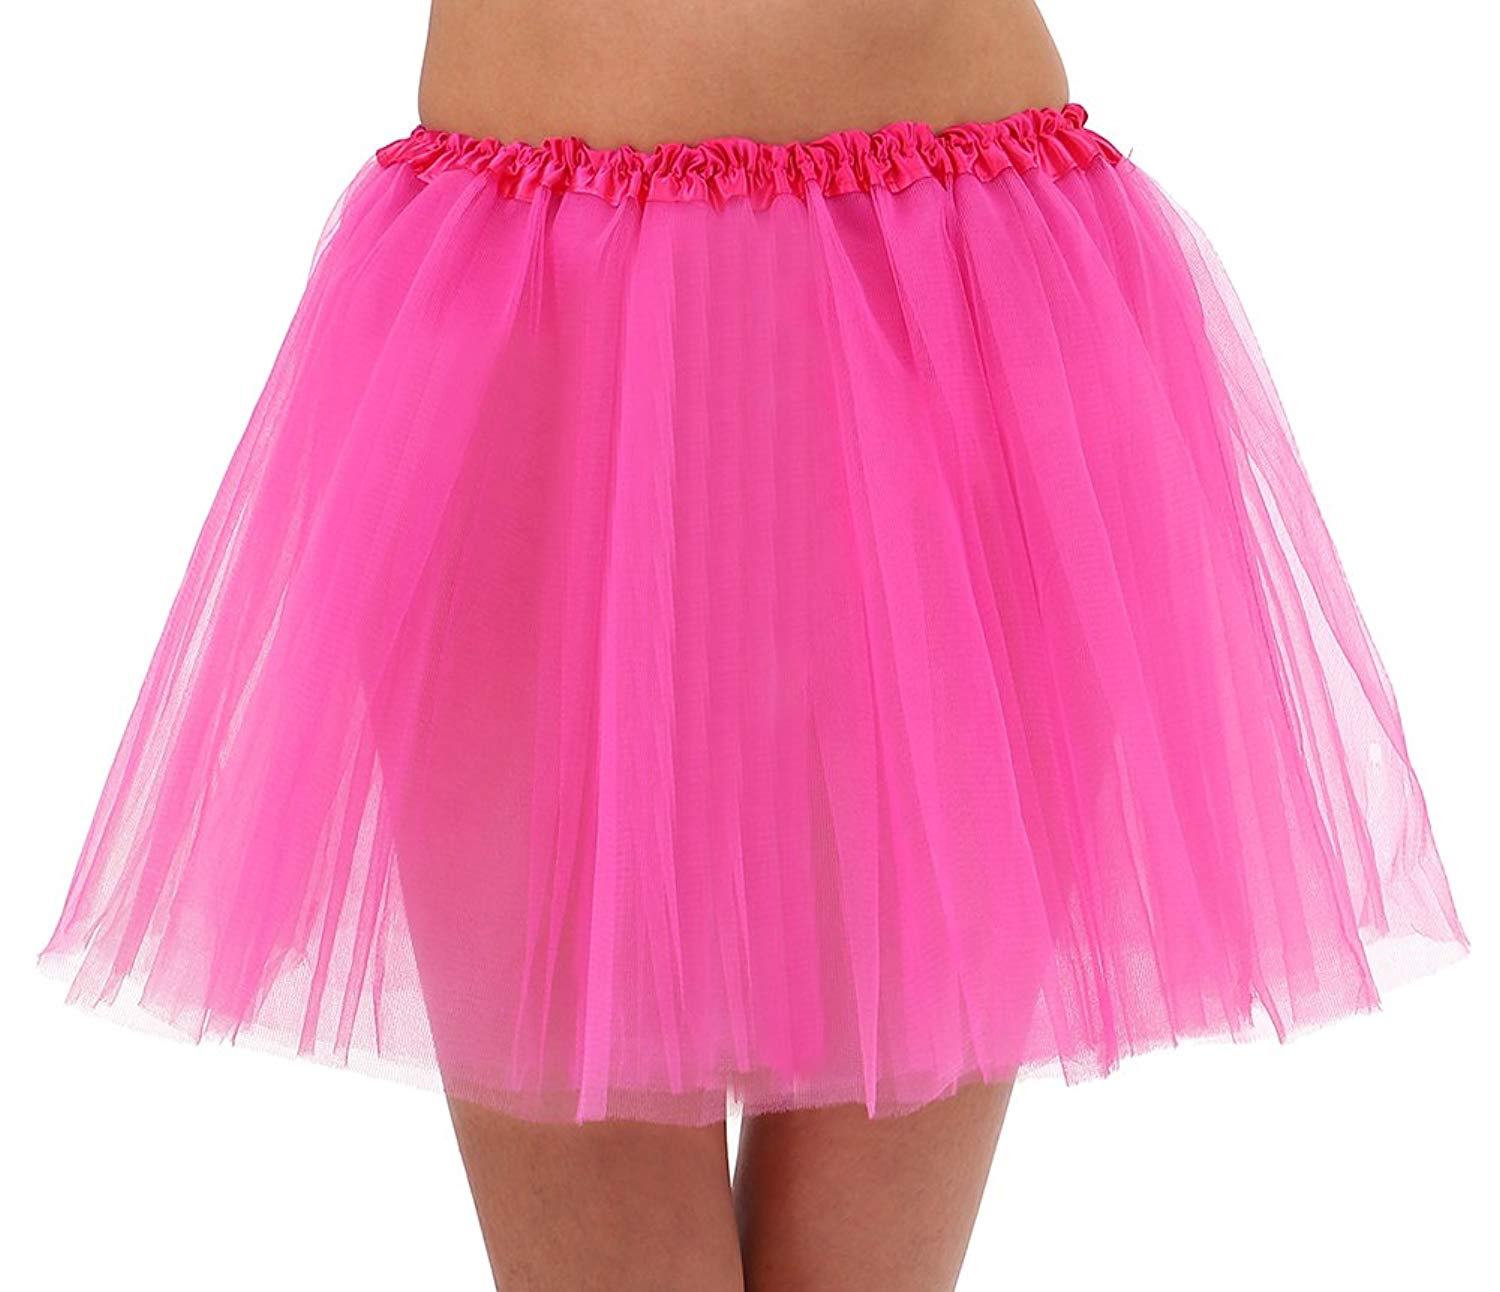 4ba32a8e6e Get Quotations · Tutu Mini Skirt Tulle Dress for Adult Women Wear Polyester  Bubble Ballerina Skirt Underwear for Party